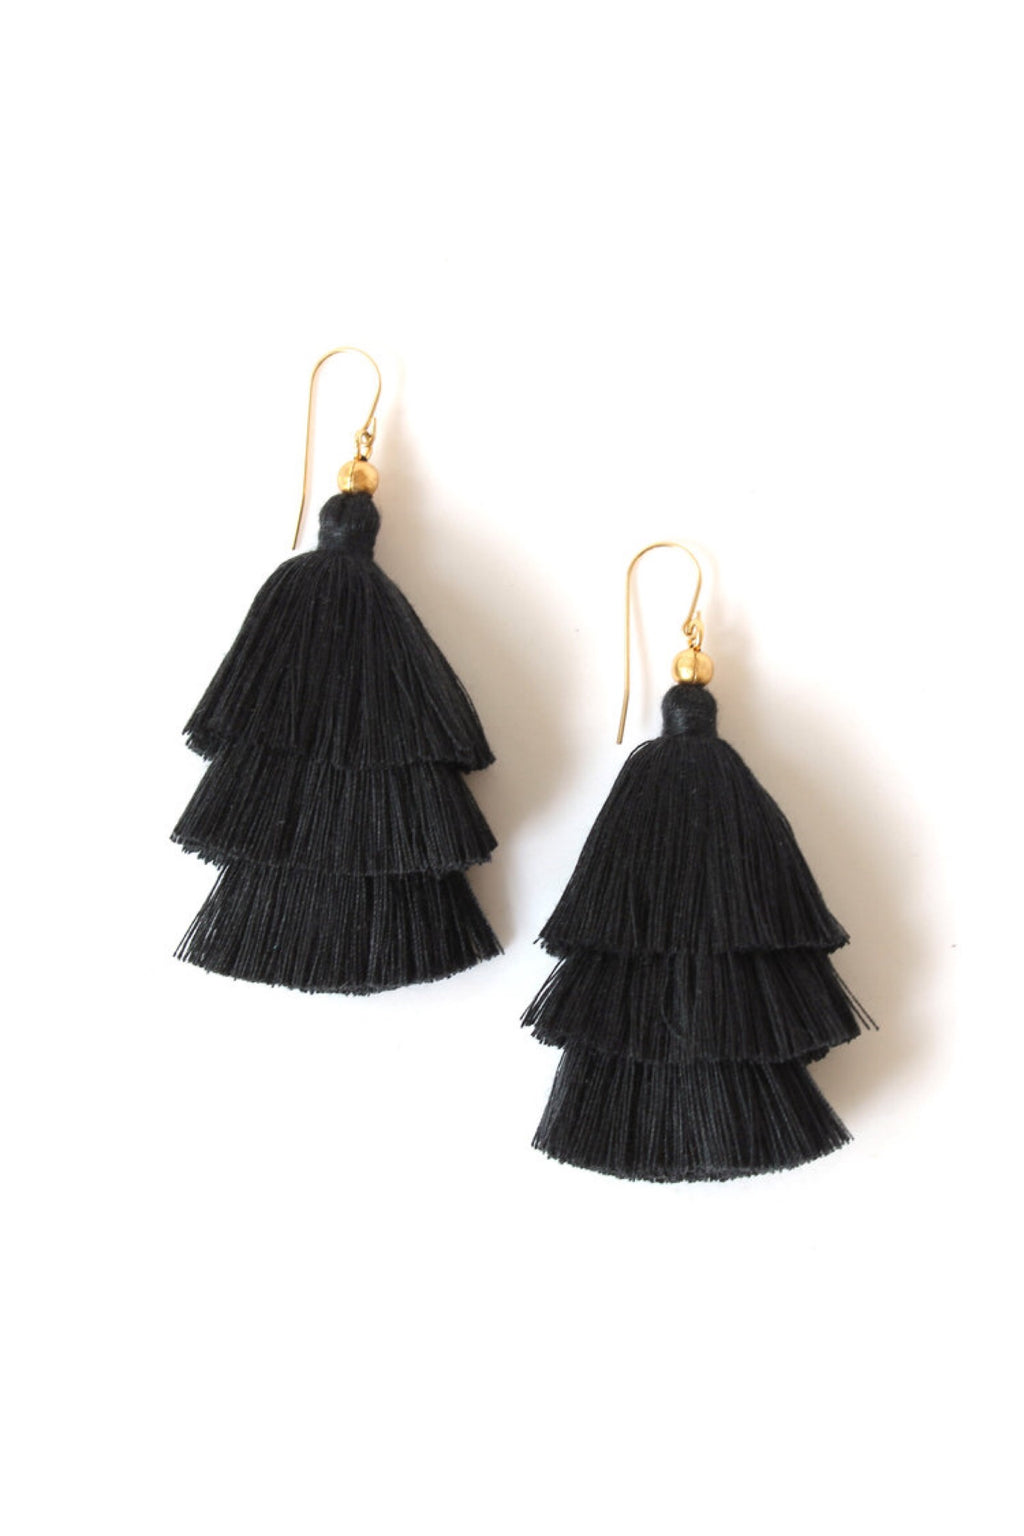 Black Mary Layered Tassel Earrings - ROSE MADE SHOP